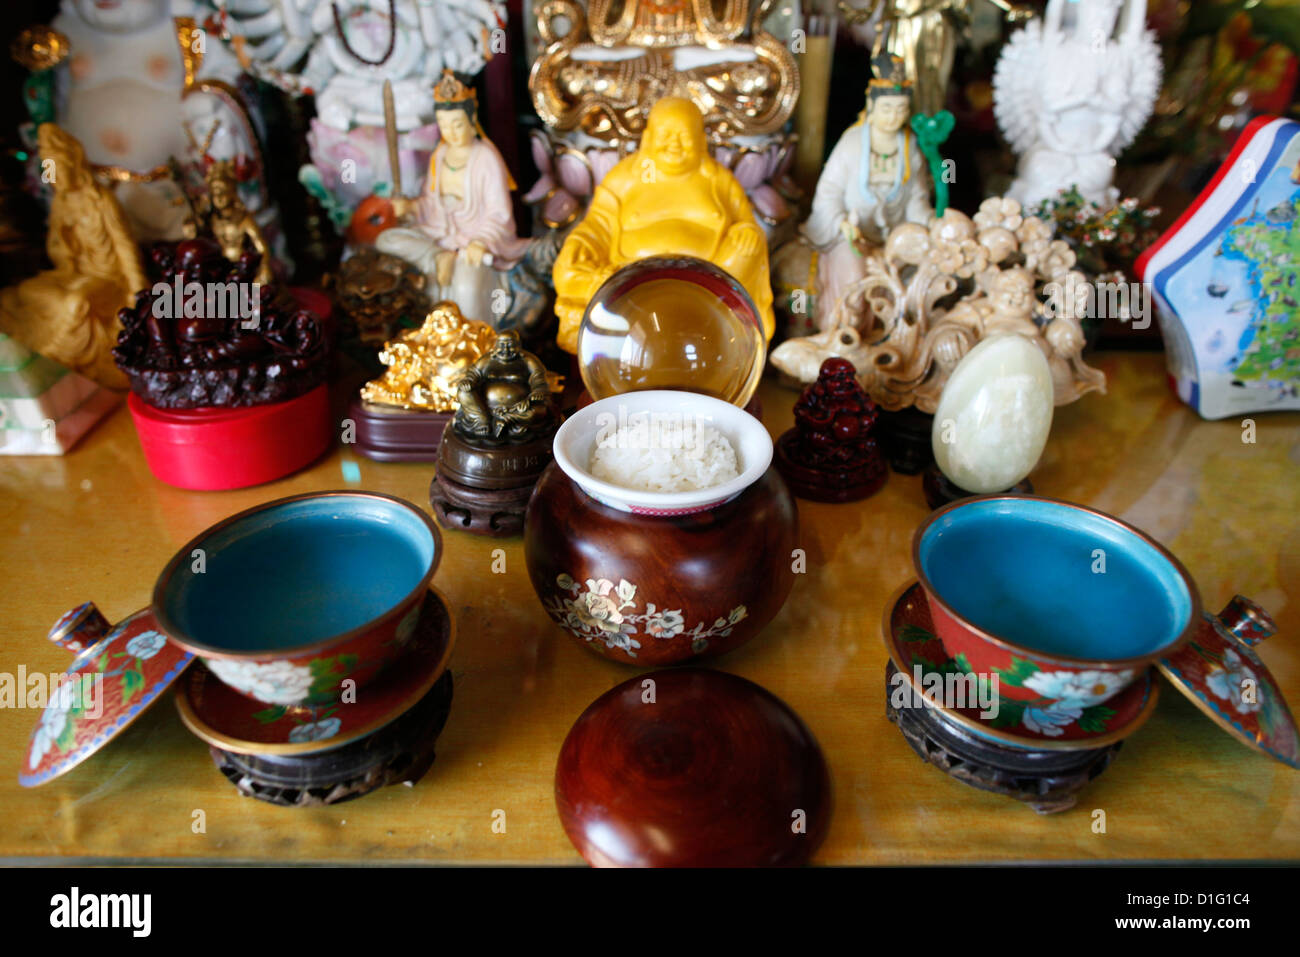 Cups containing holy water, Buddhist altar, Tu An Buddhist temple, Saint-Pierre-en-Faucigny, Haute Savoie, France, - Stock Image